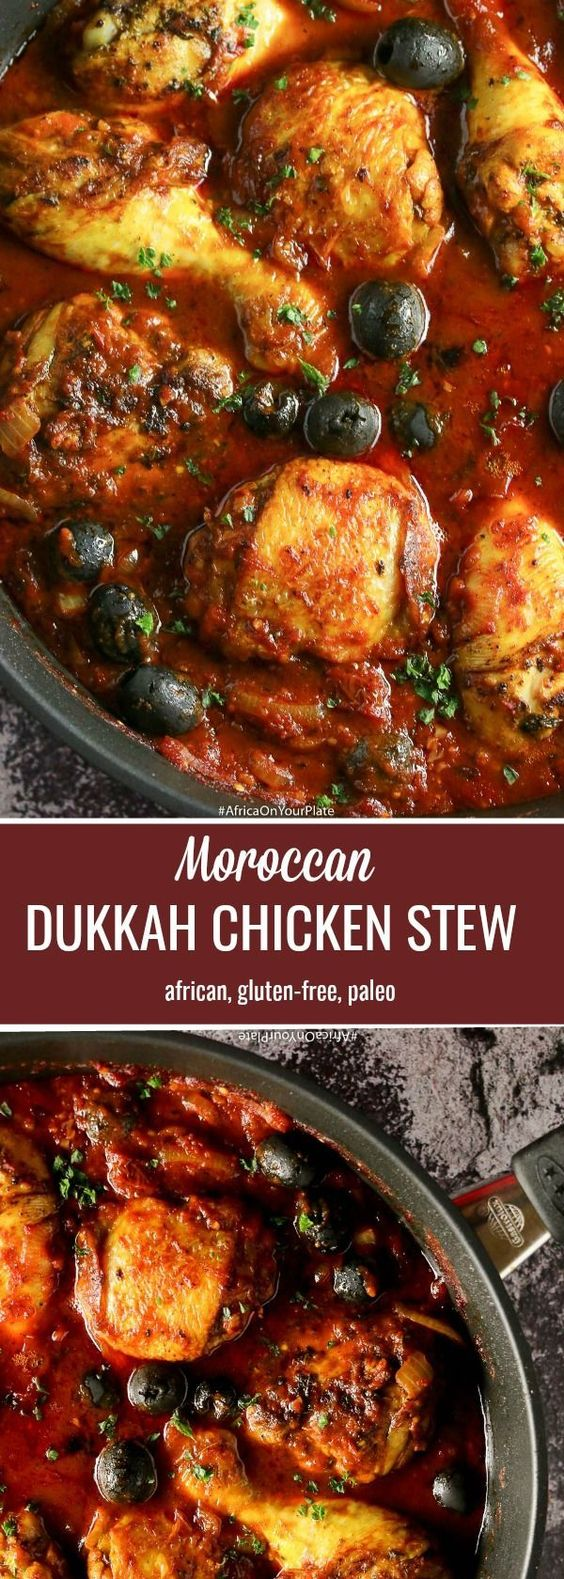 Spicy Dukkah Moroccan Chicken Stew